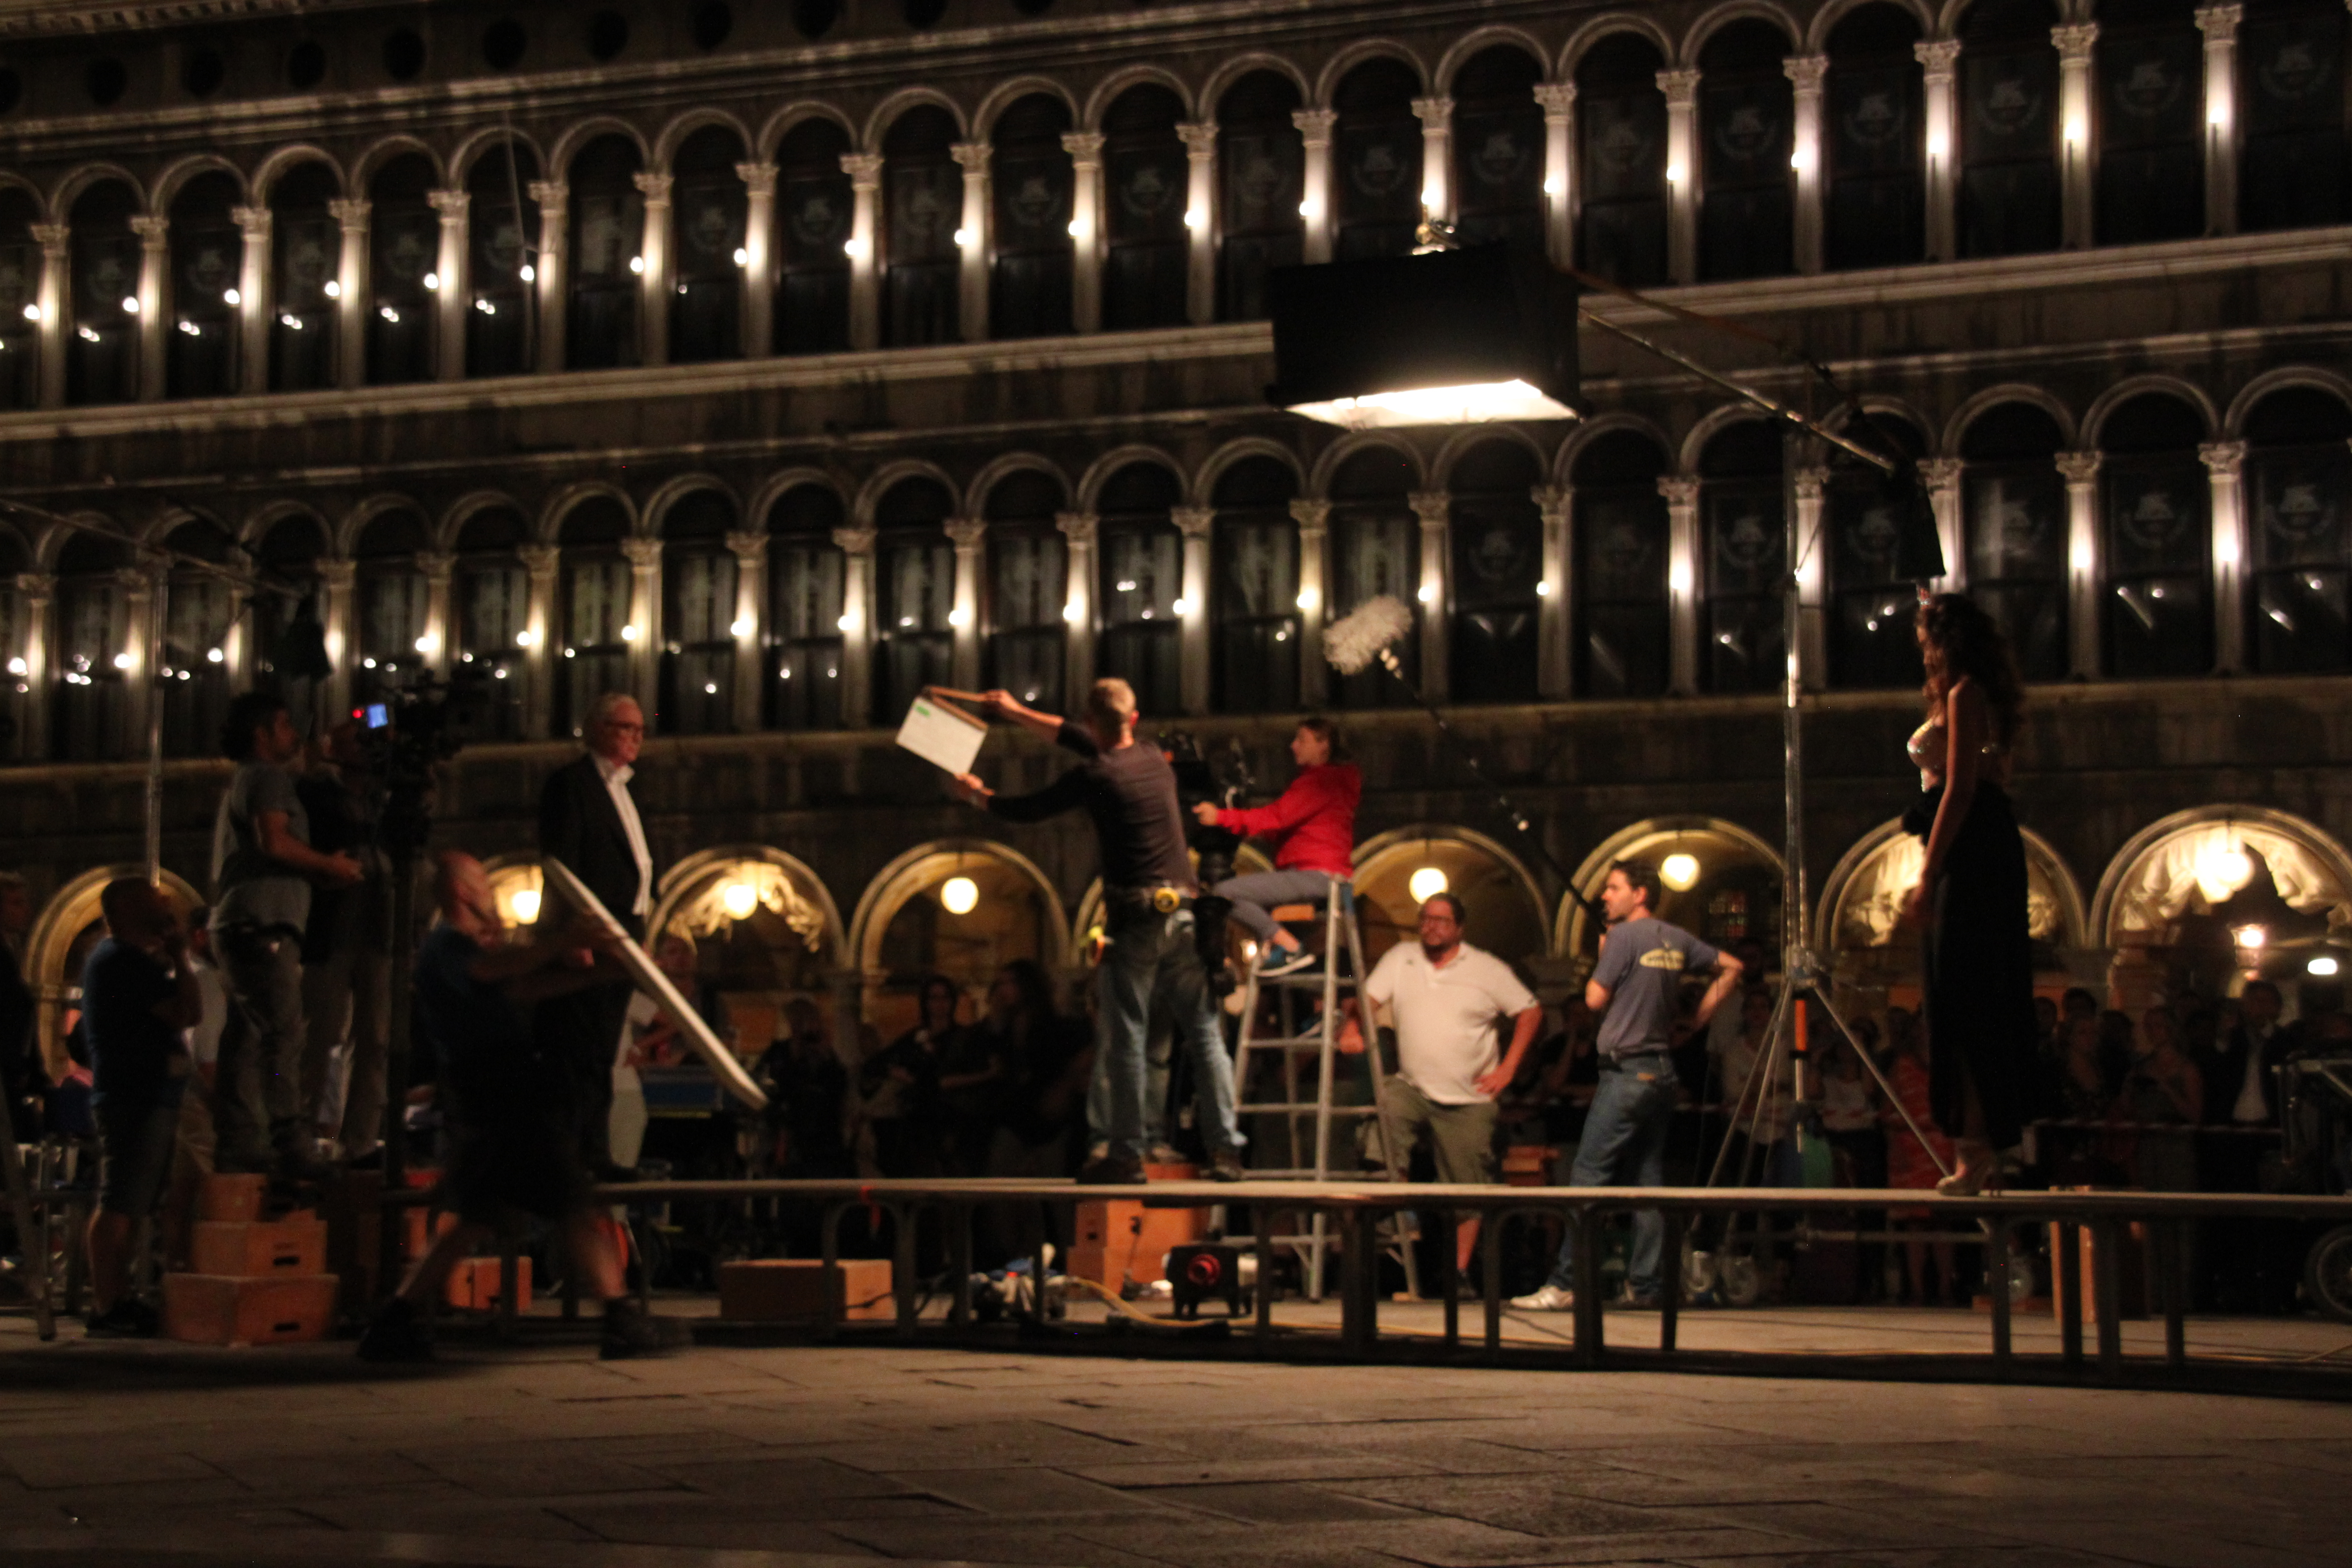 Actors Madalina Ghenea & Michael Caine take their places on a catwalk through St Mark's Square as they film scenes for Il Giovinezza in Venice, Italy. Take 1.